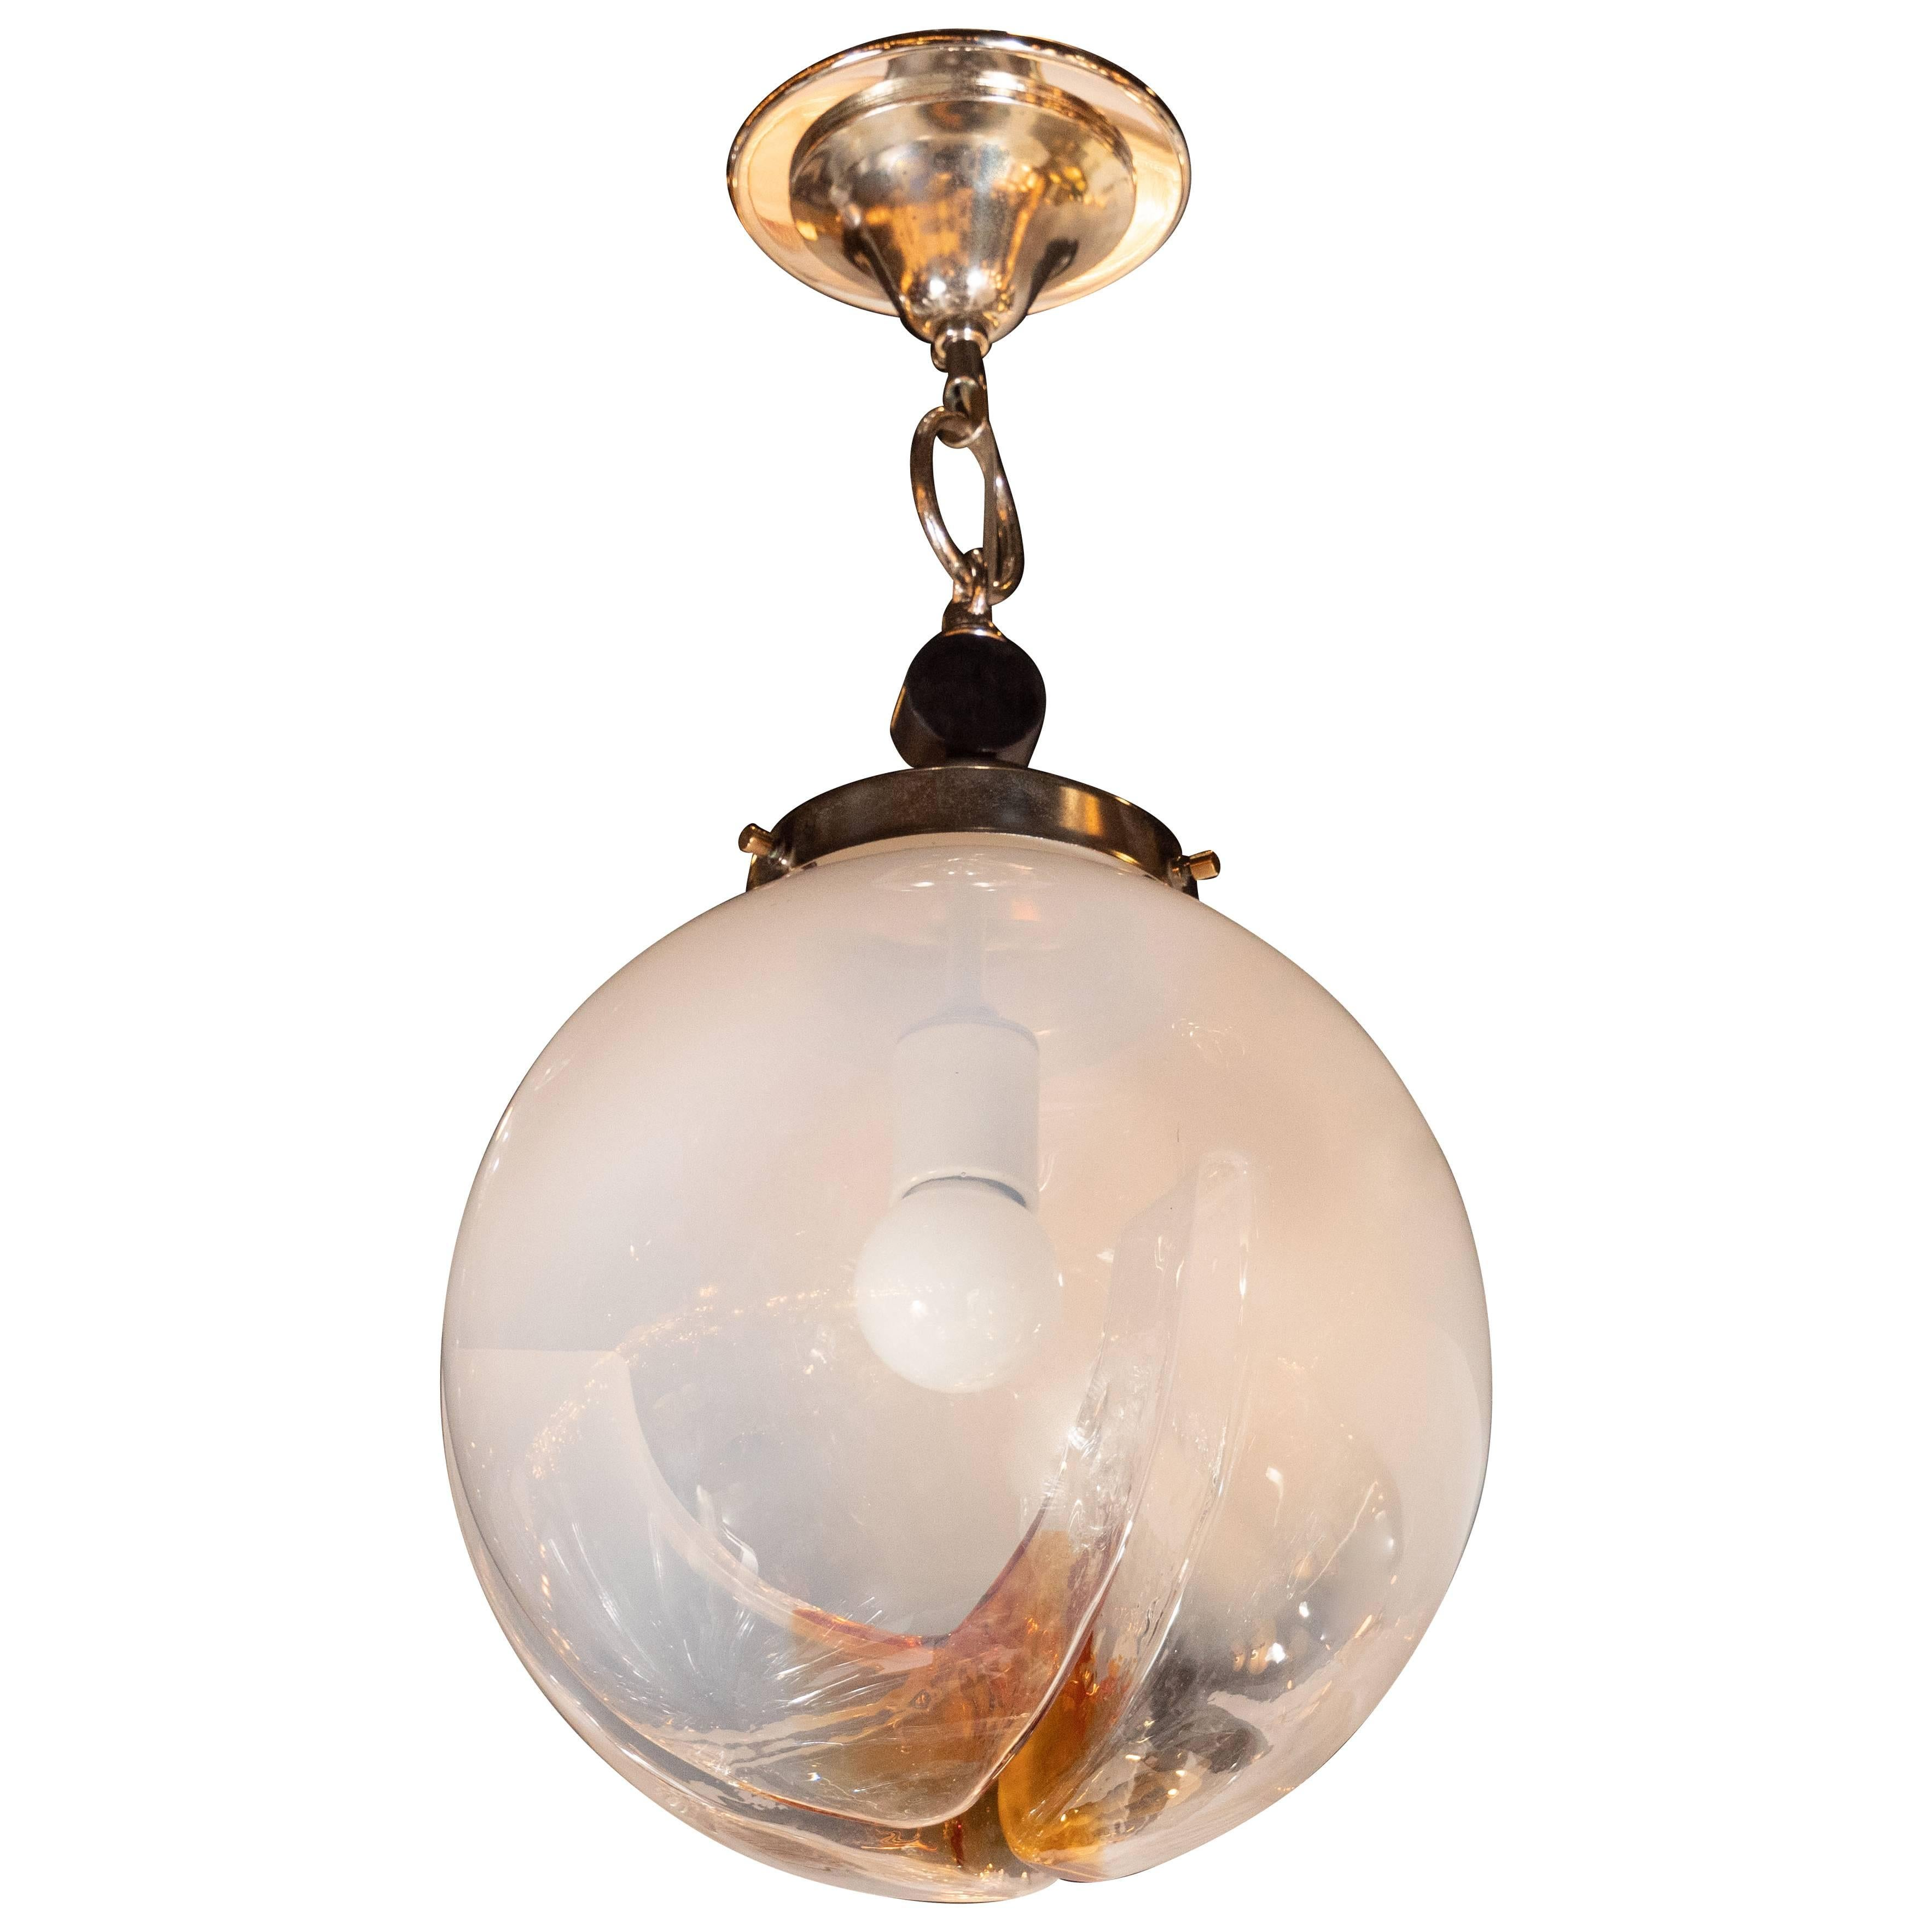 Midcentury Globe Pendant in Semi-Opaque Glass with Amber Accents by Mazzega